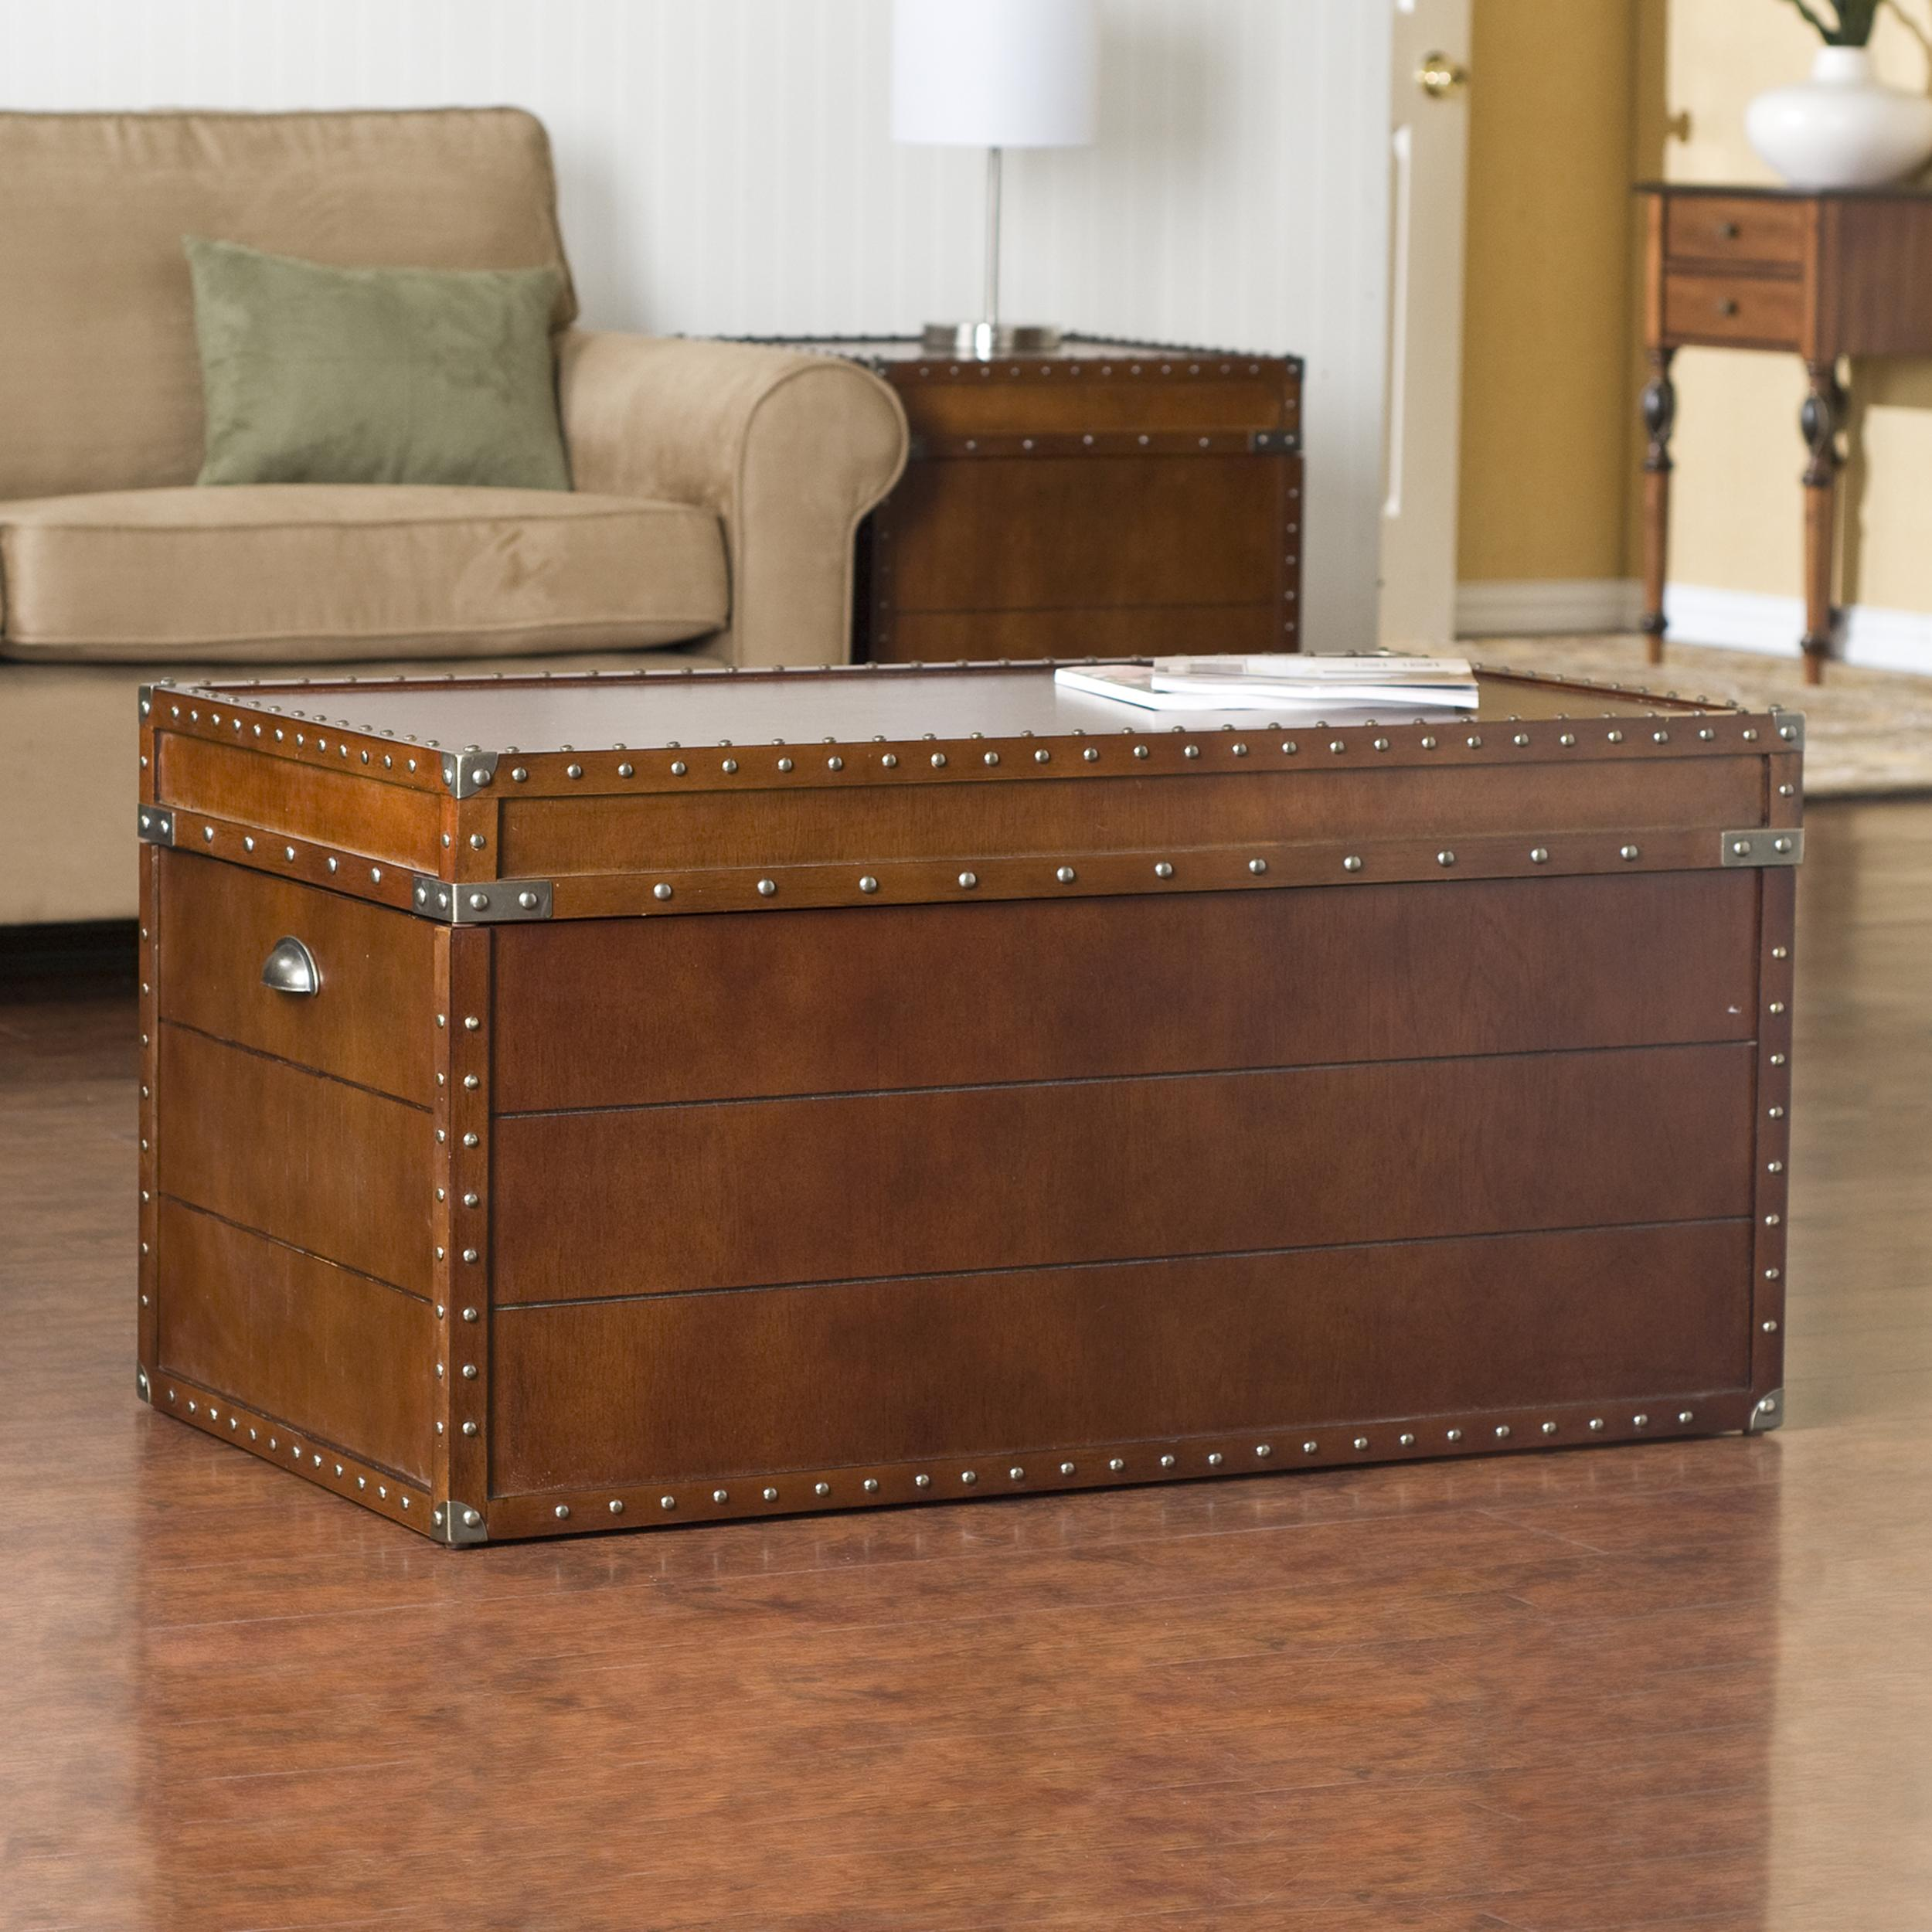 ... antique look this steamer trunk coffee table is ideal as a decorative